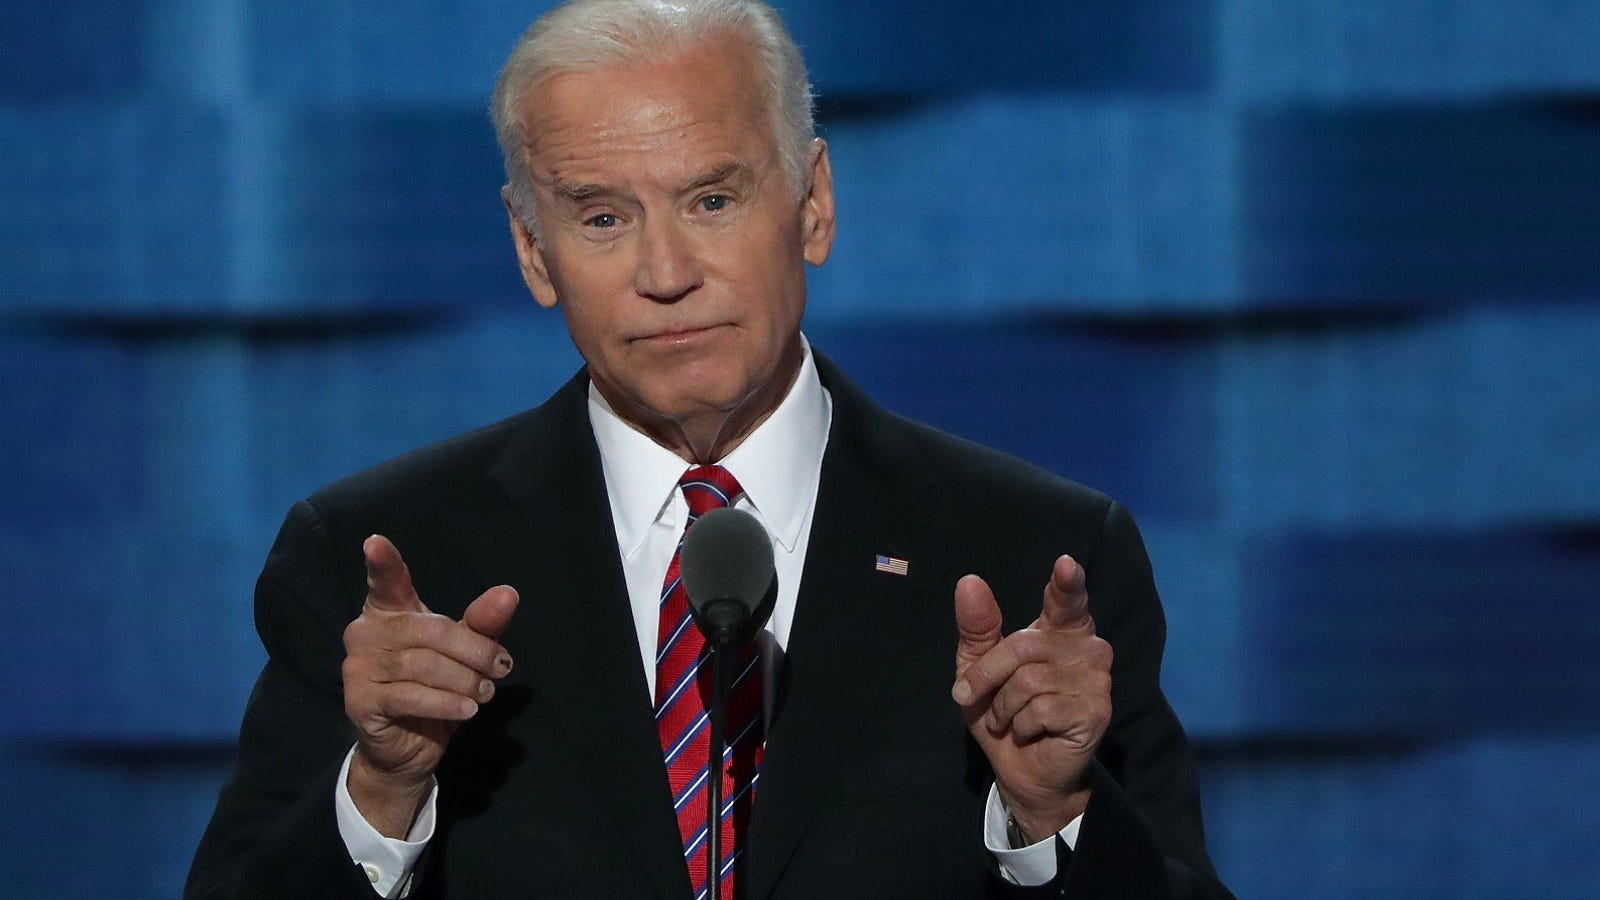 Report: Joe Biden to Make 2016 Presidential Decision ...